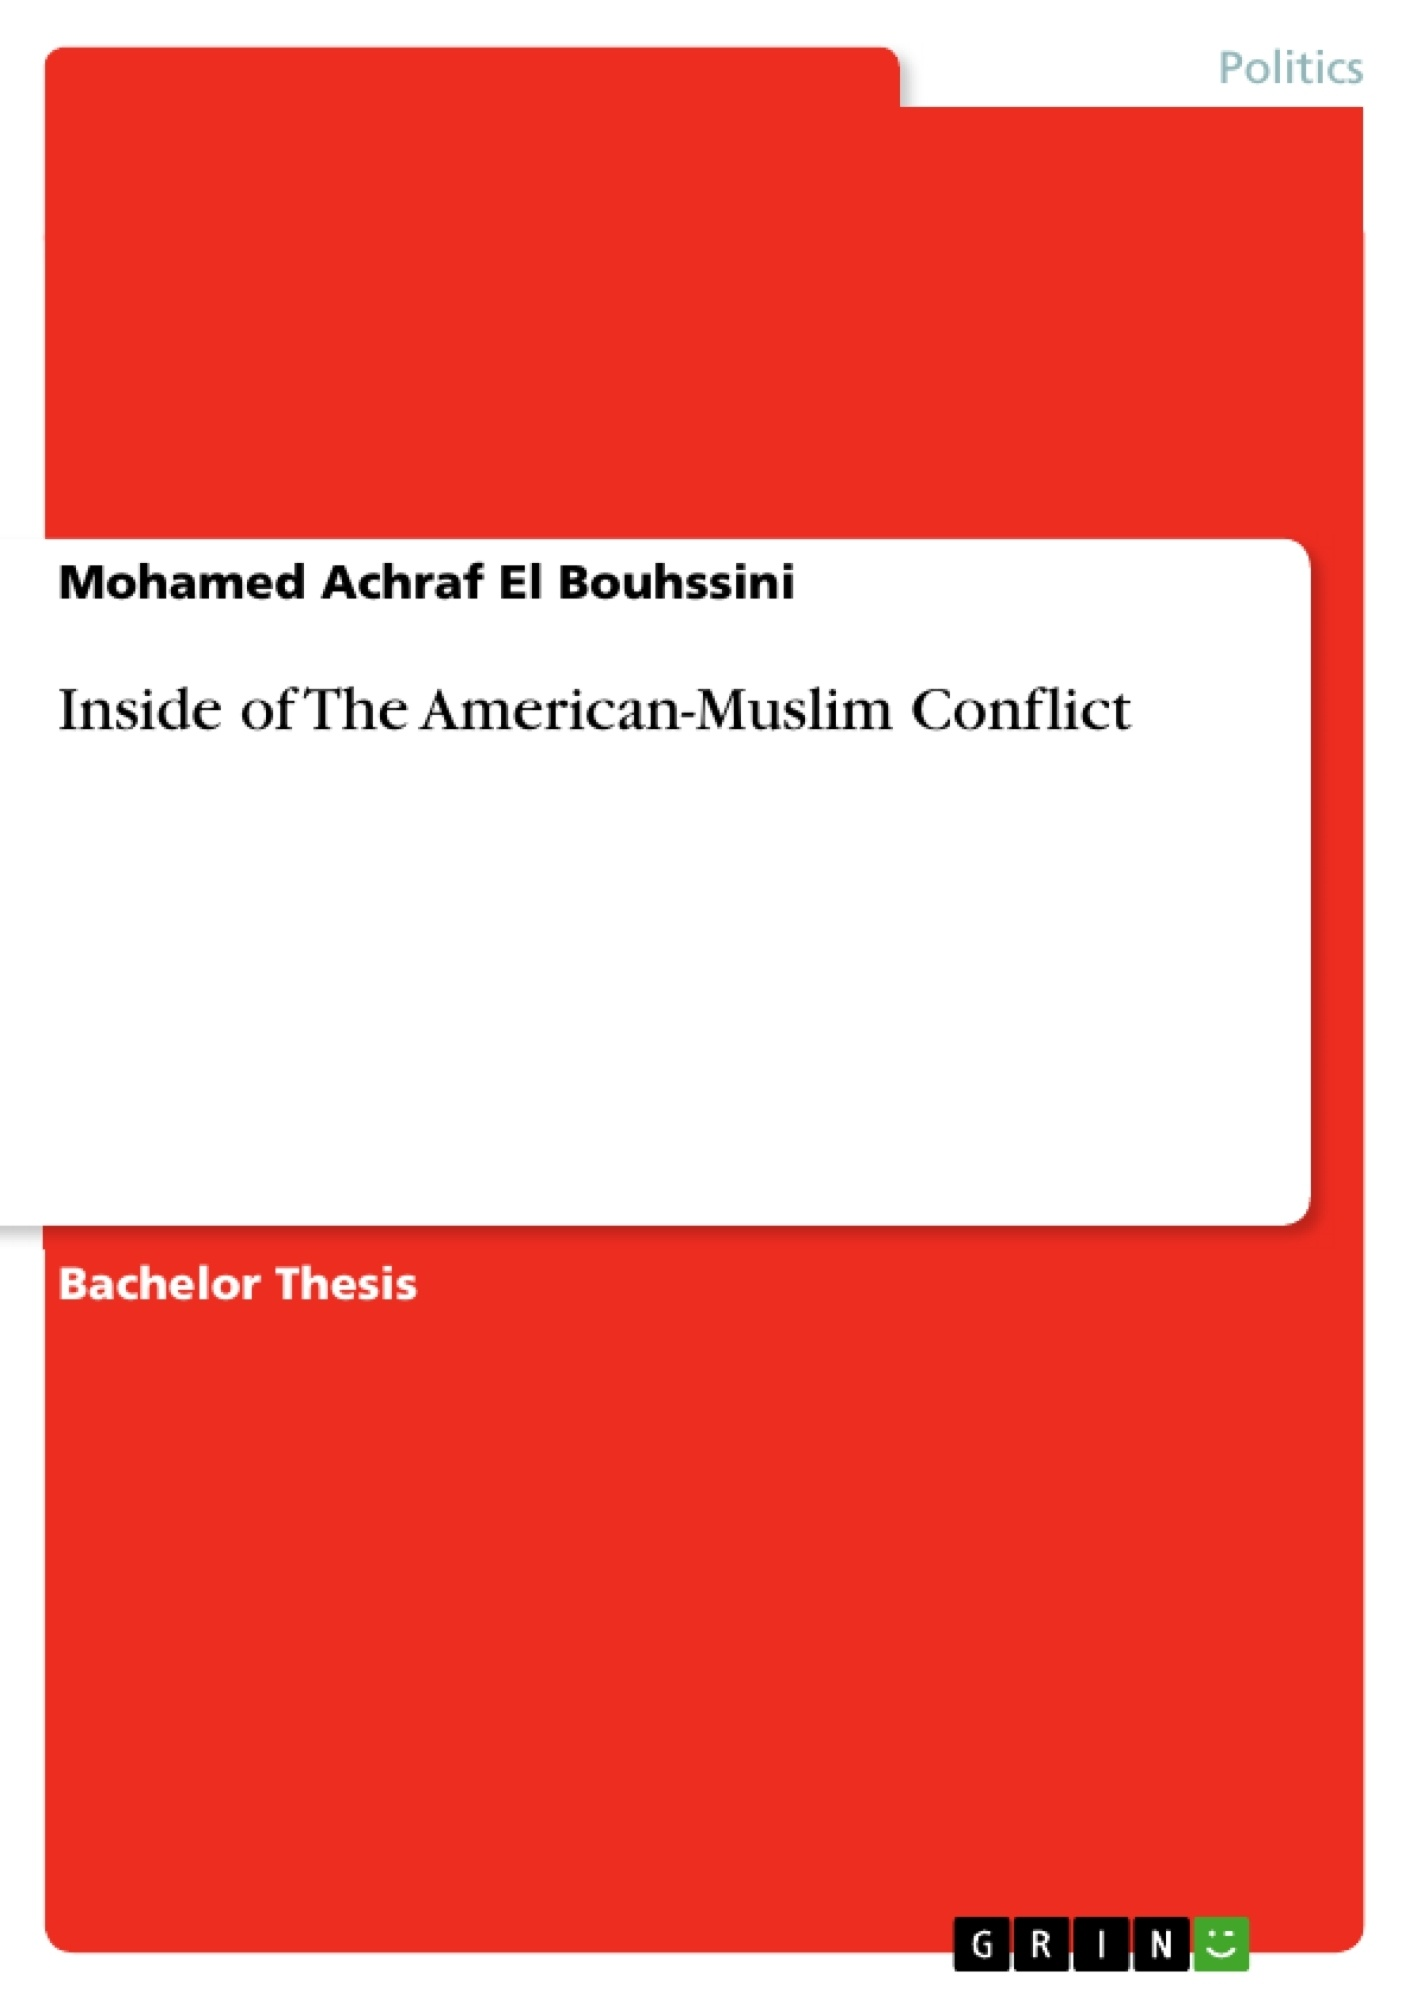 Title: Inside of The American-Muslim Conflict